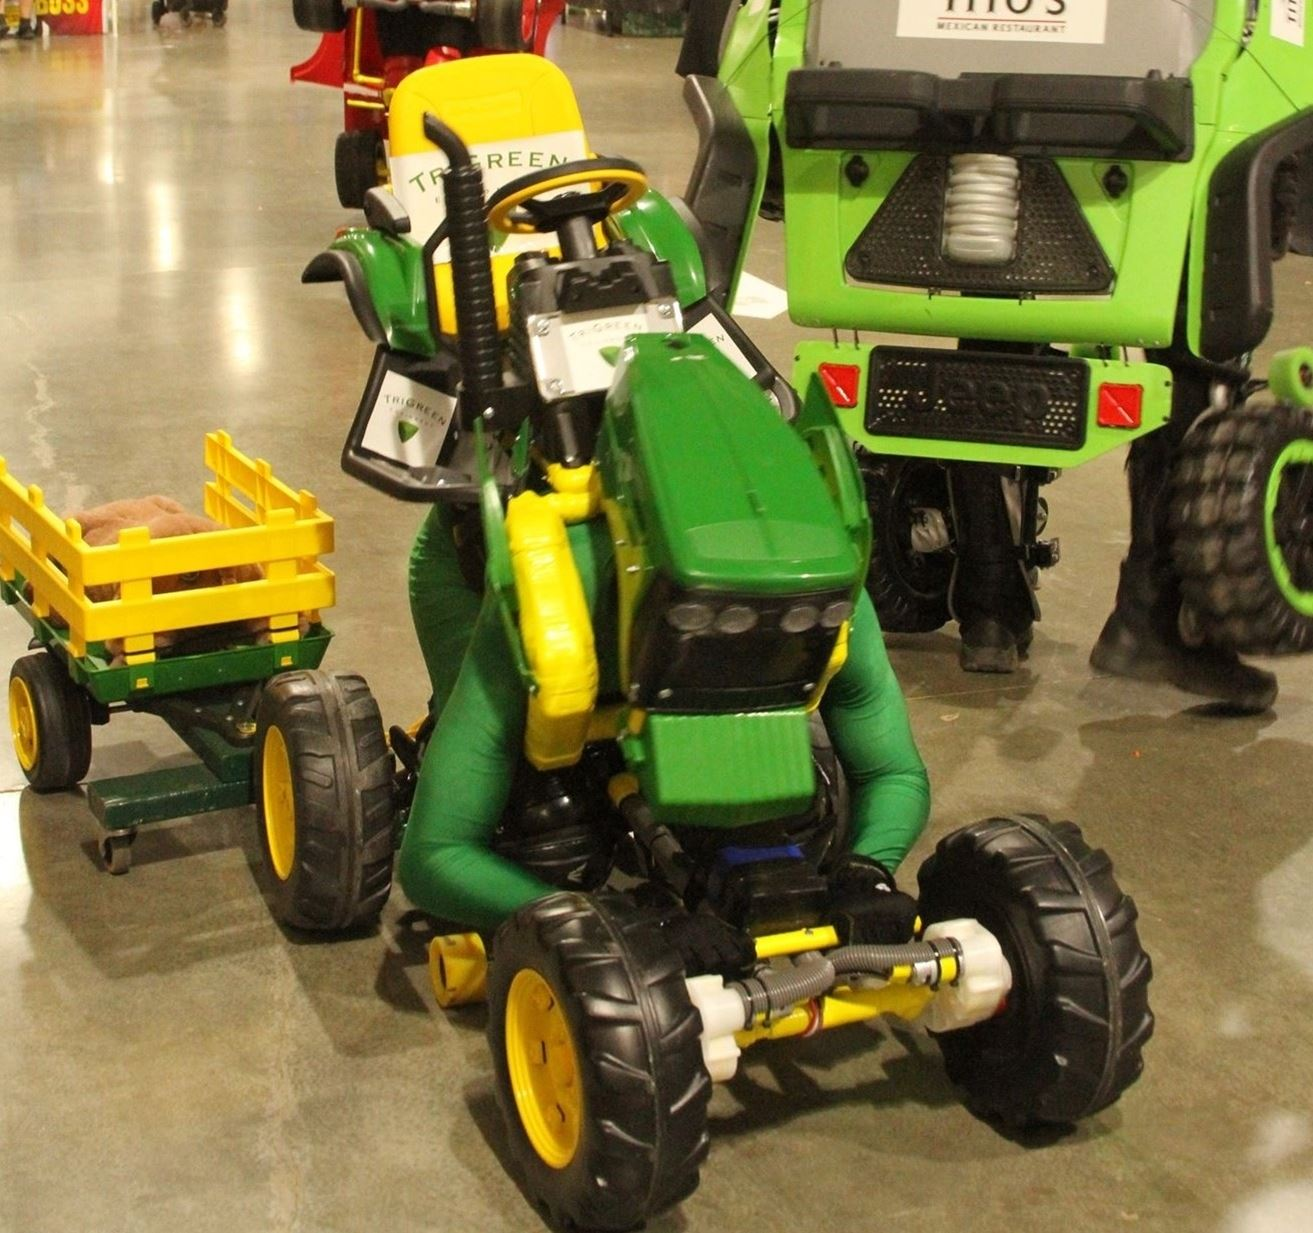 Robocar green tractor with wagon